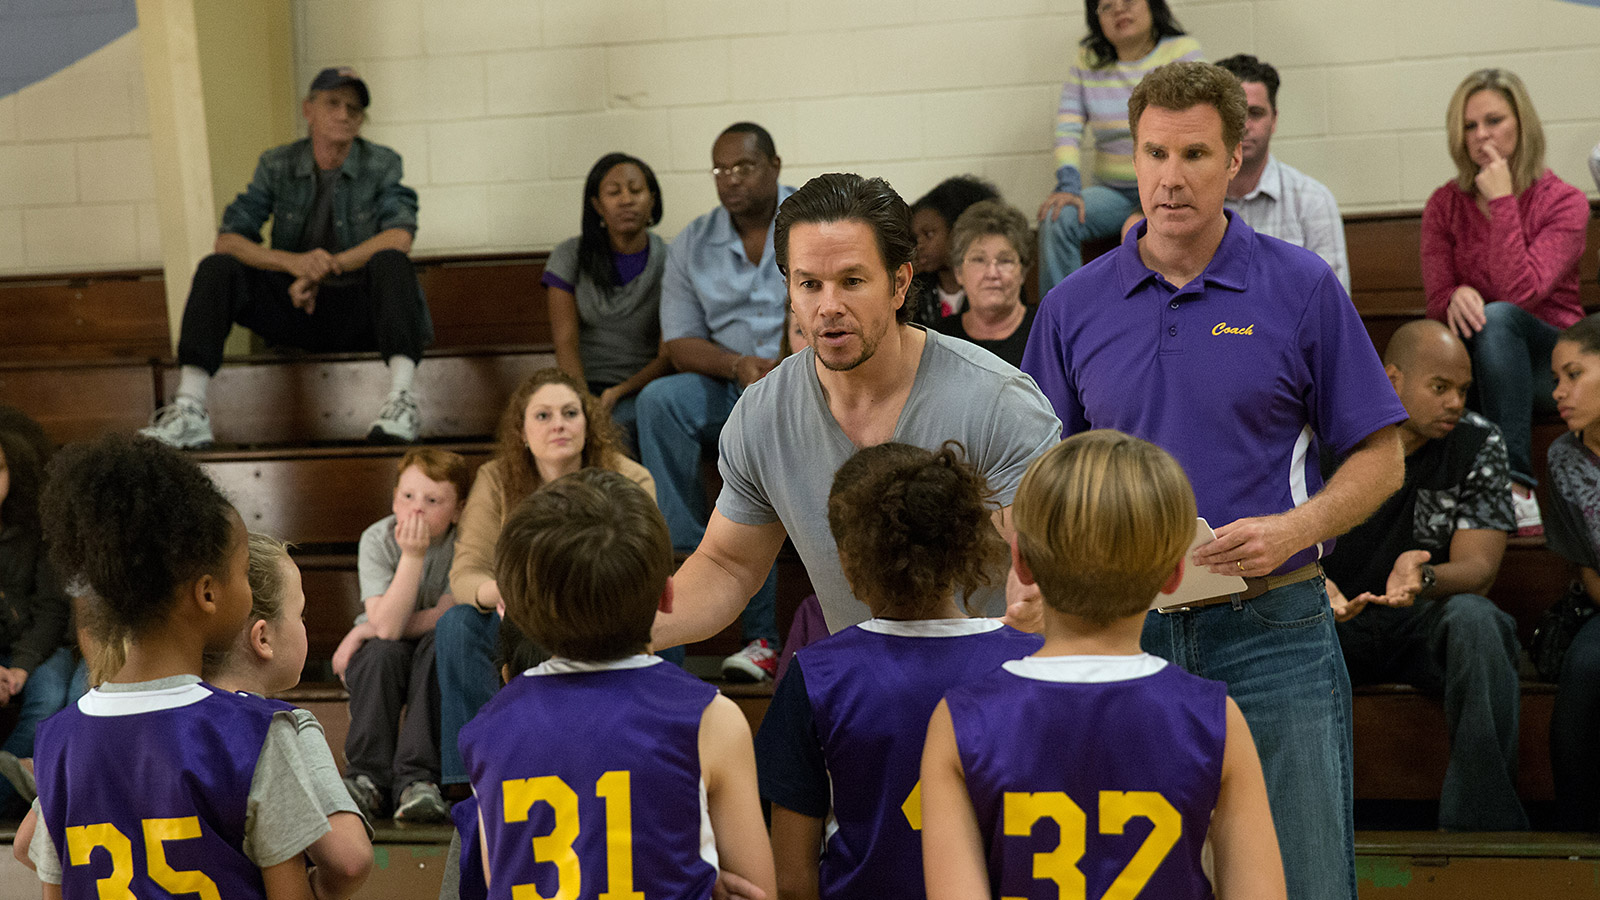 daddys home basketball scene desktop wallpaper 1034